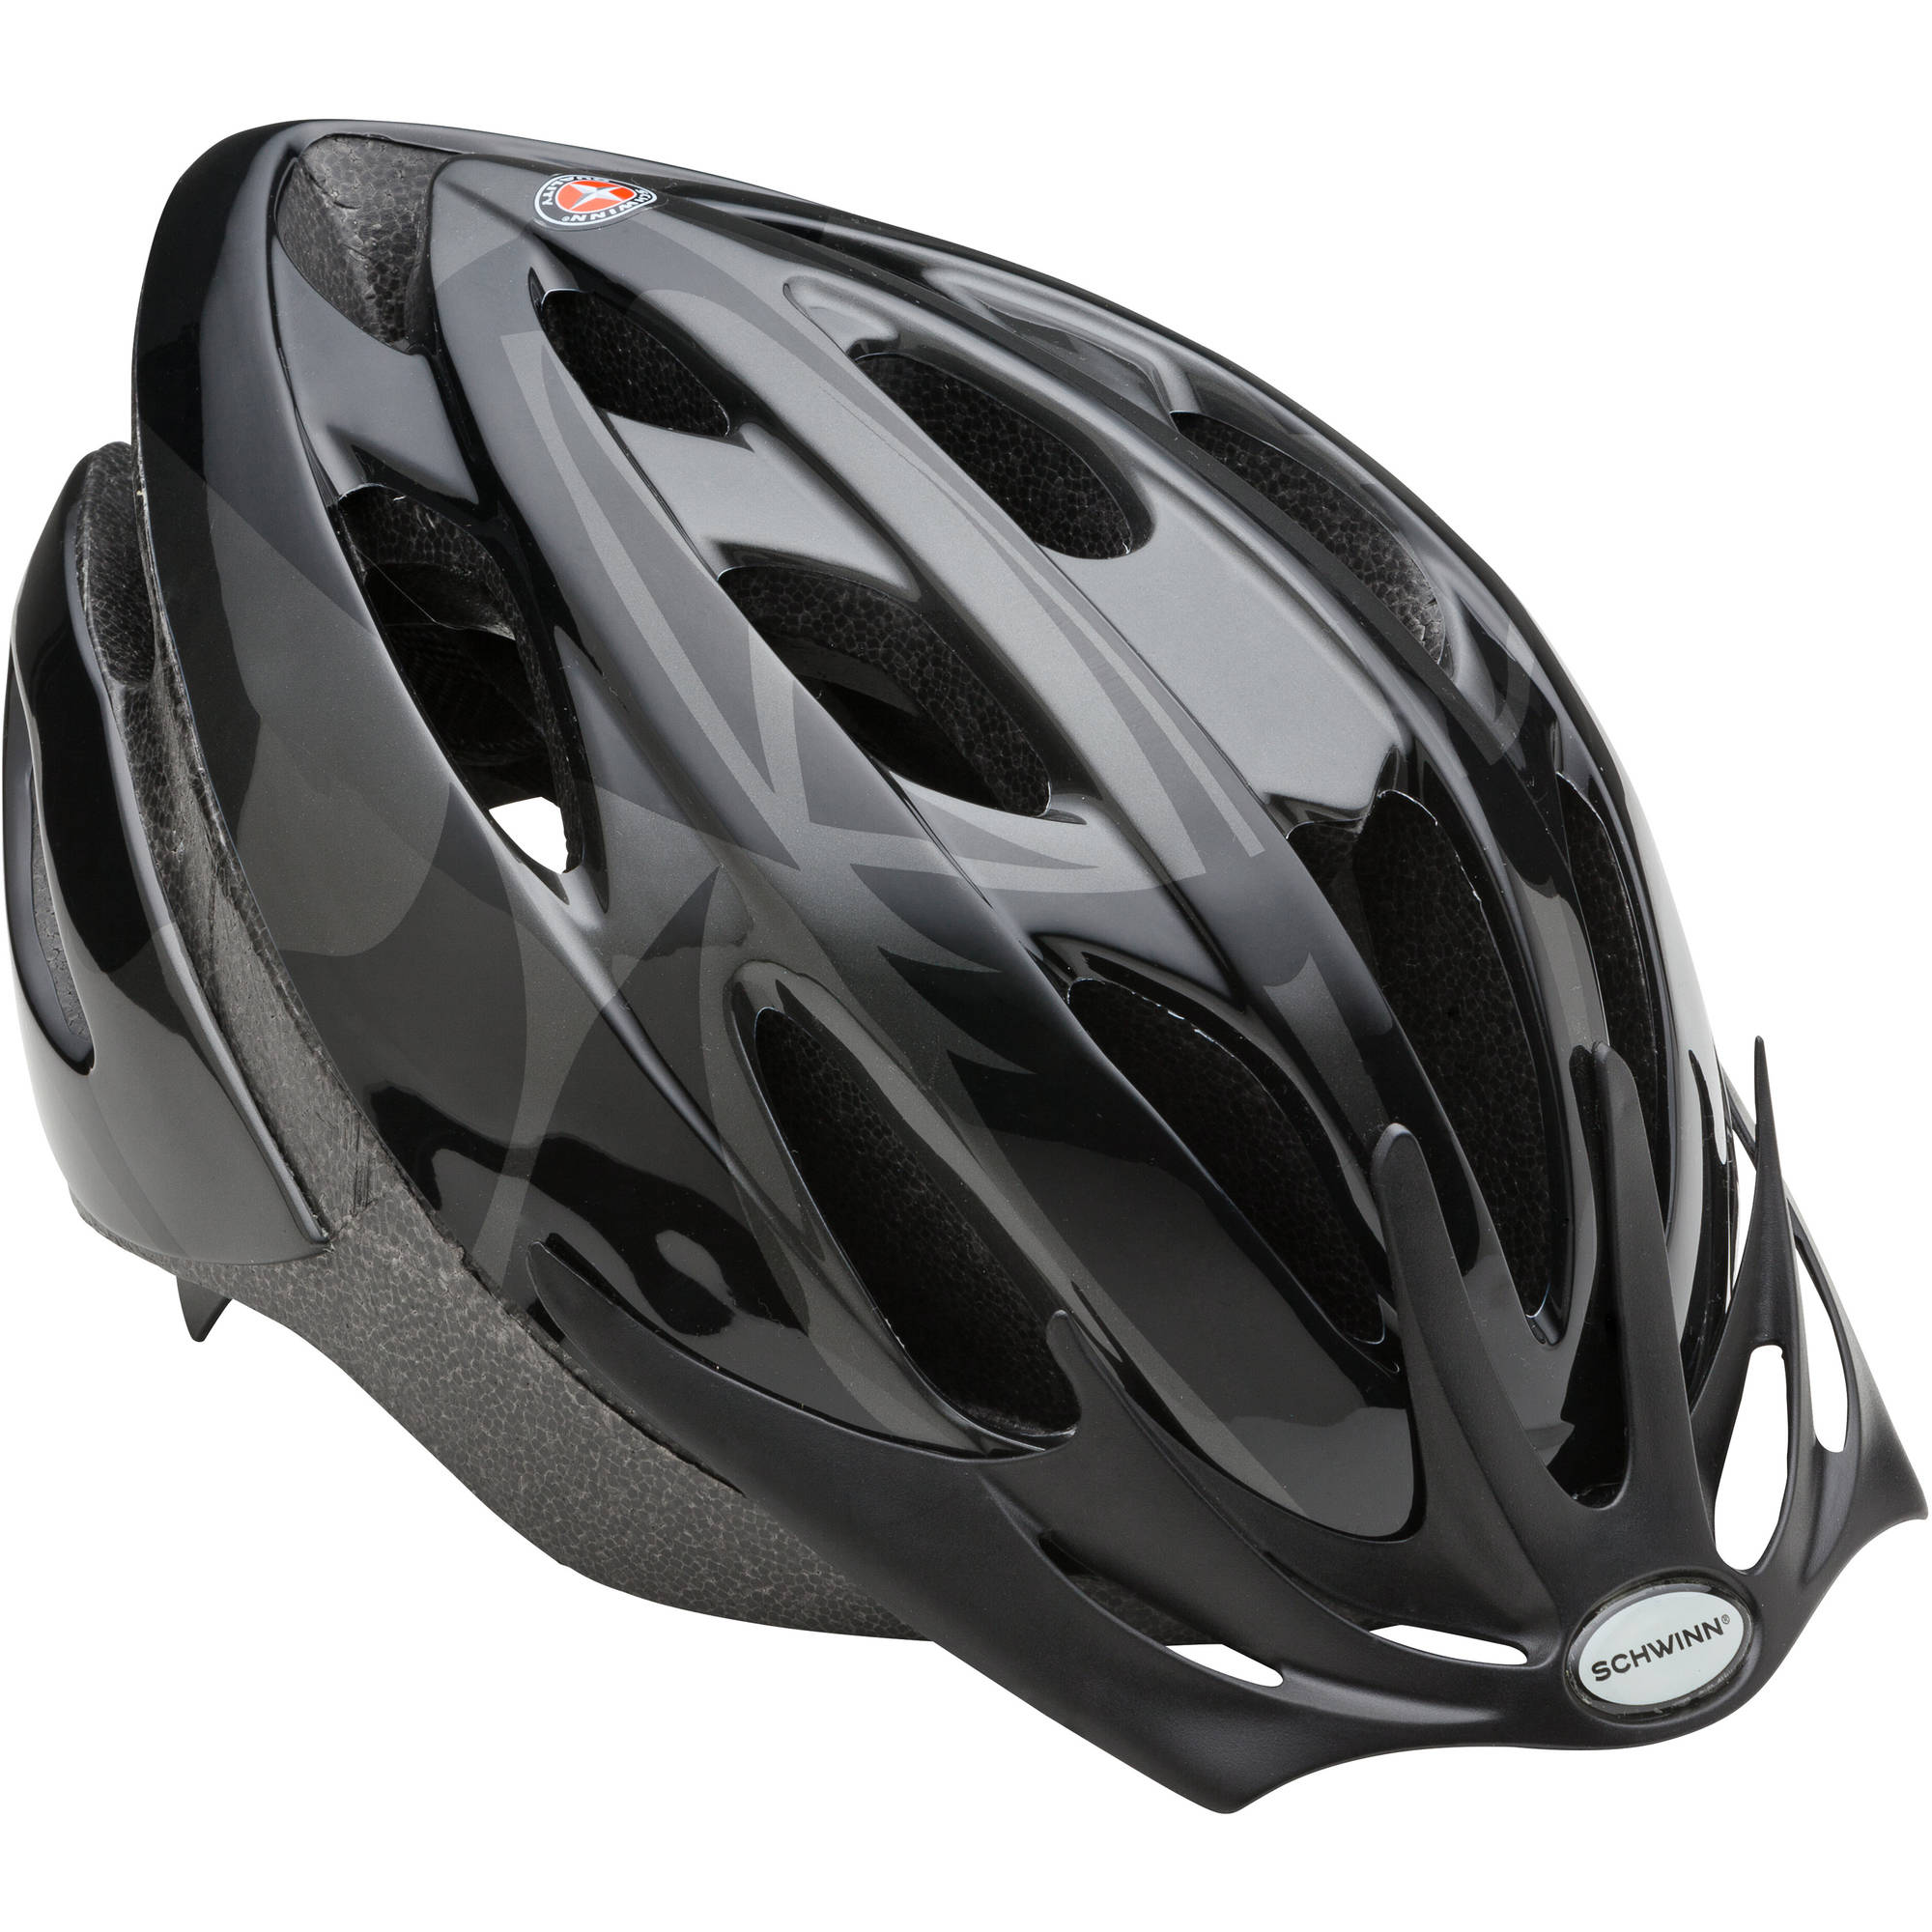 Schwinn Black Lighted Thrasher Helmet, Adult